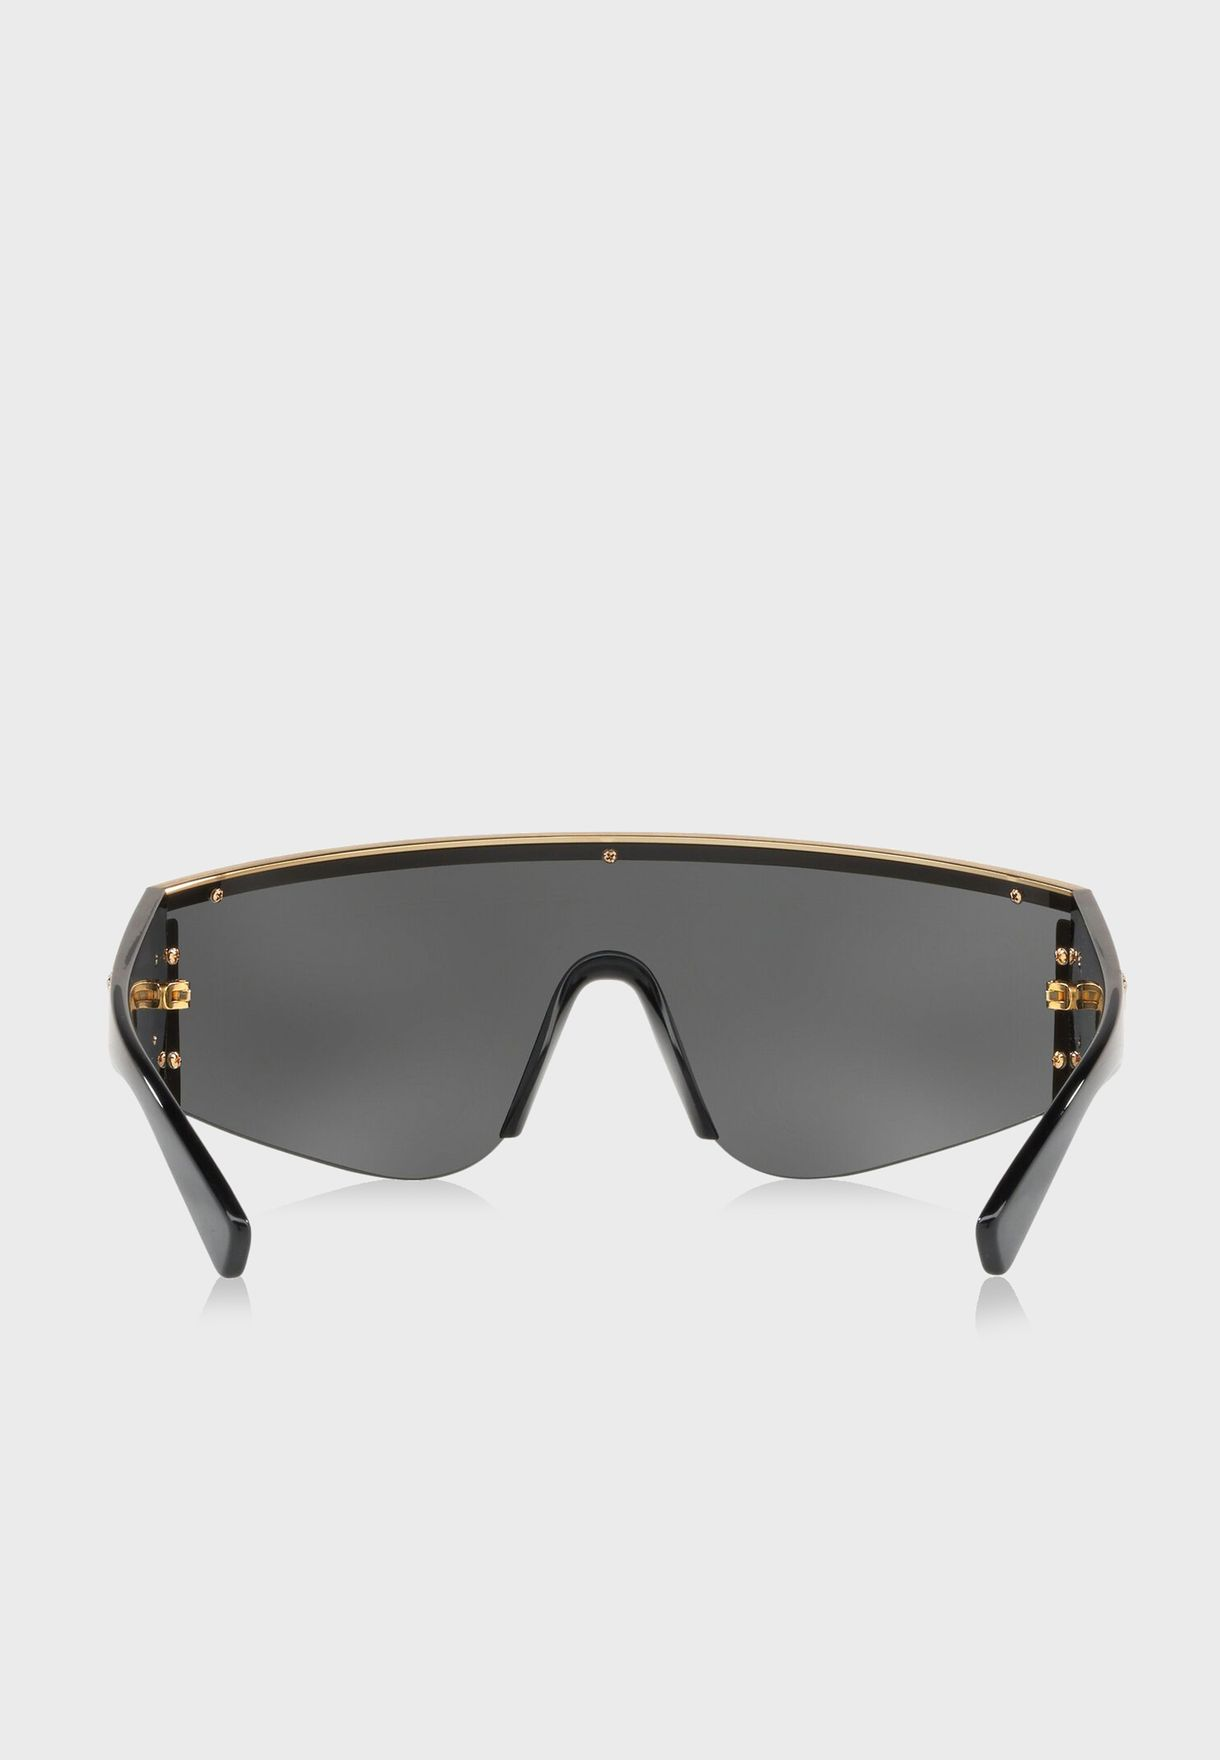 0VE2197 Sunglasses